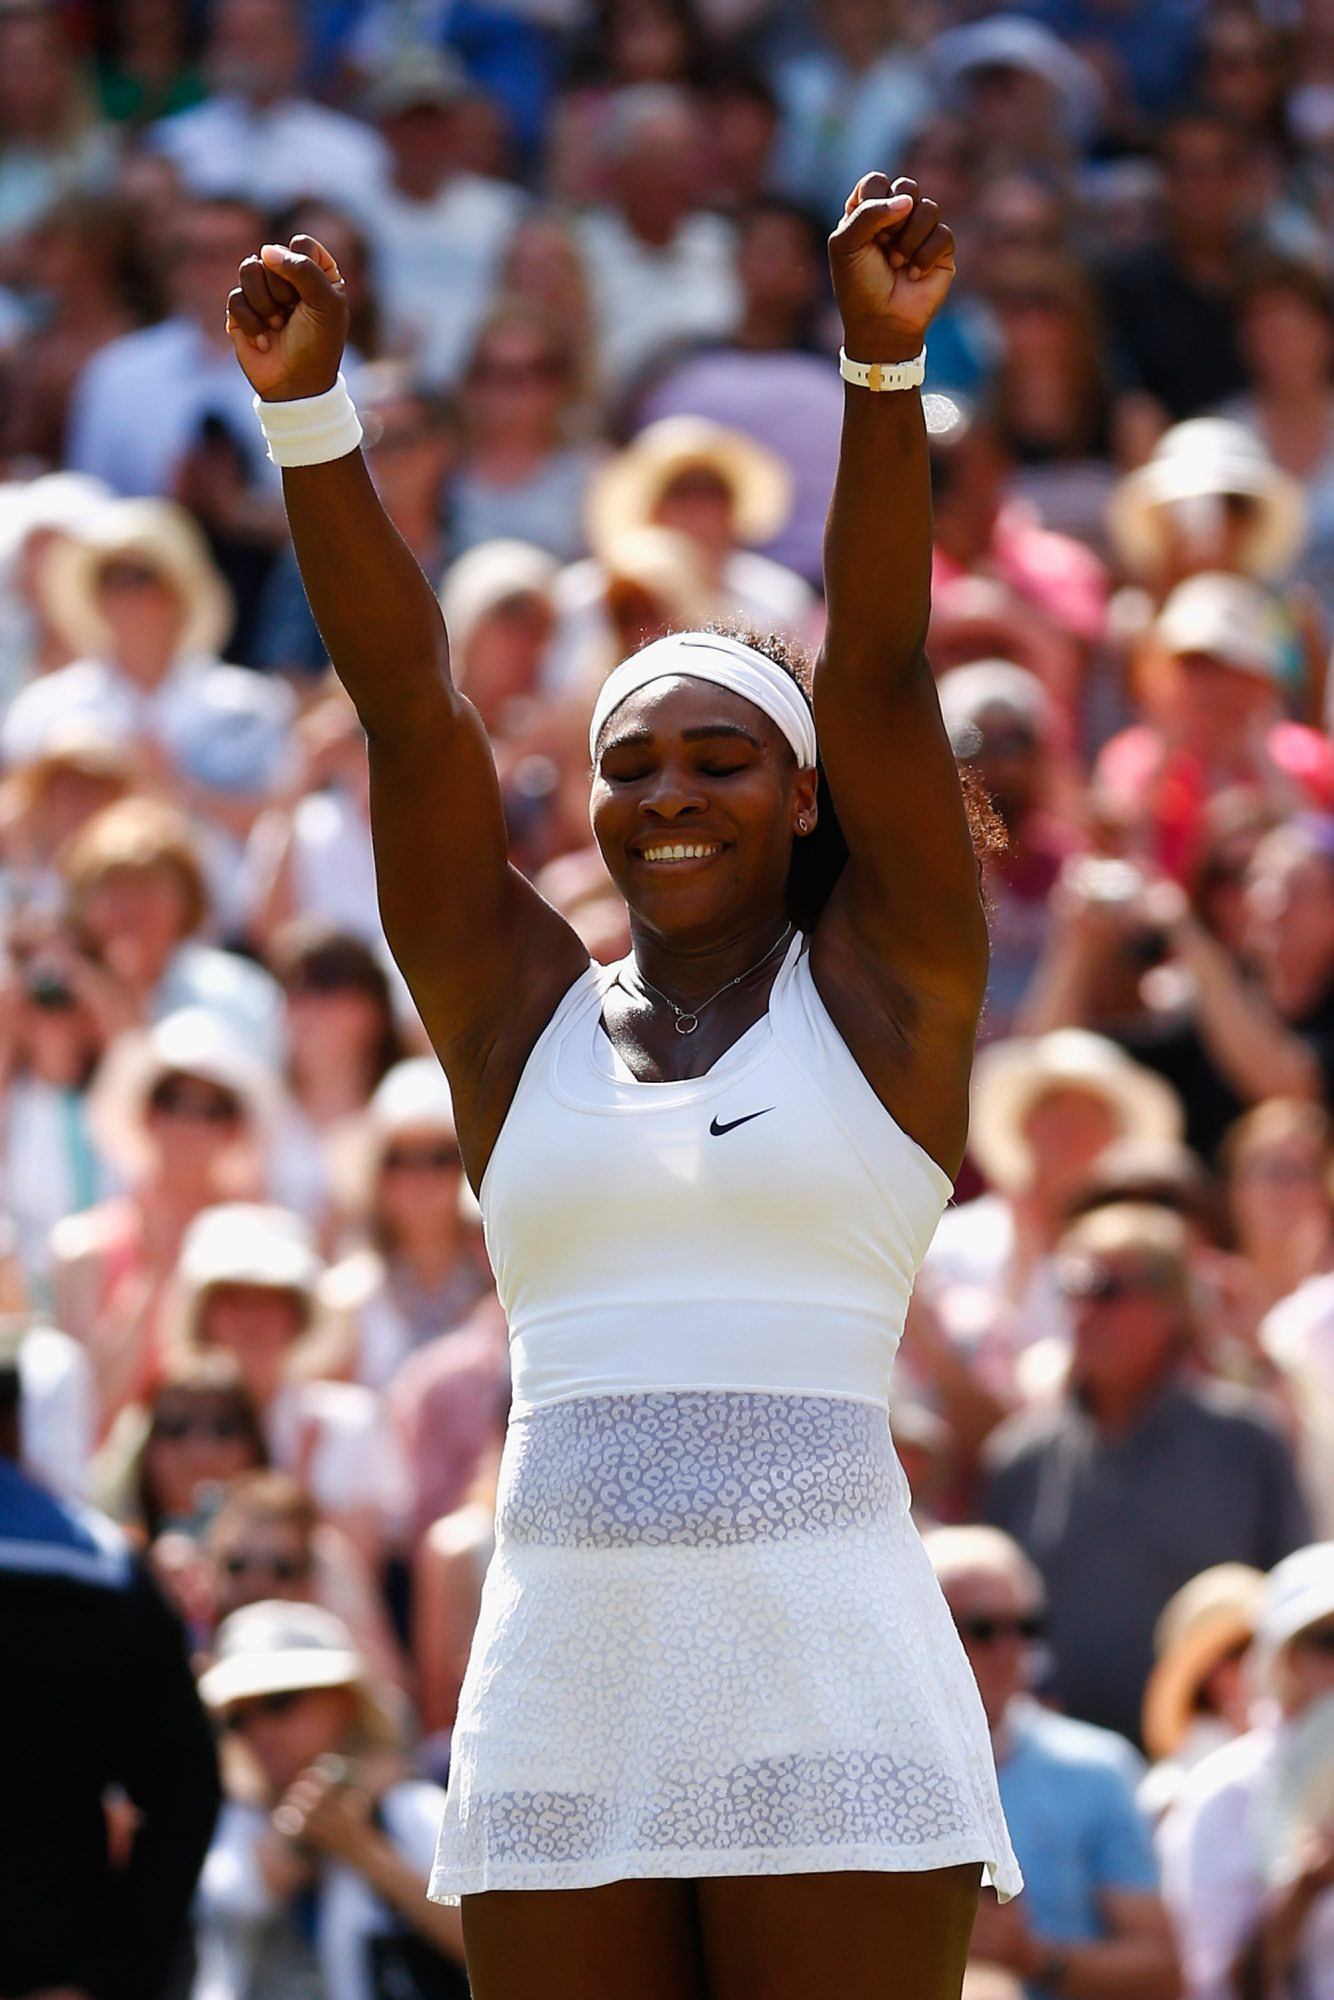 Serena Williams celebrates her victory over Garbine Muguruza of Spain at Wimbledon on Saturday.